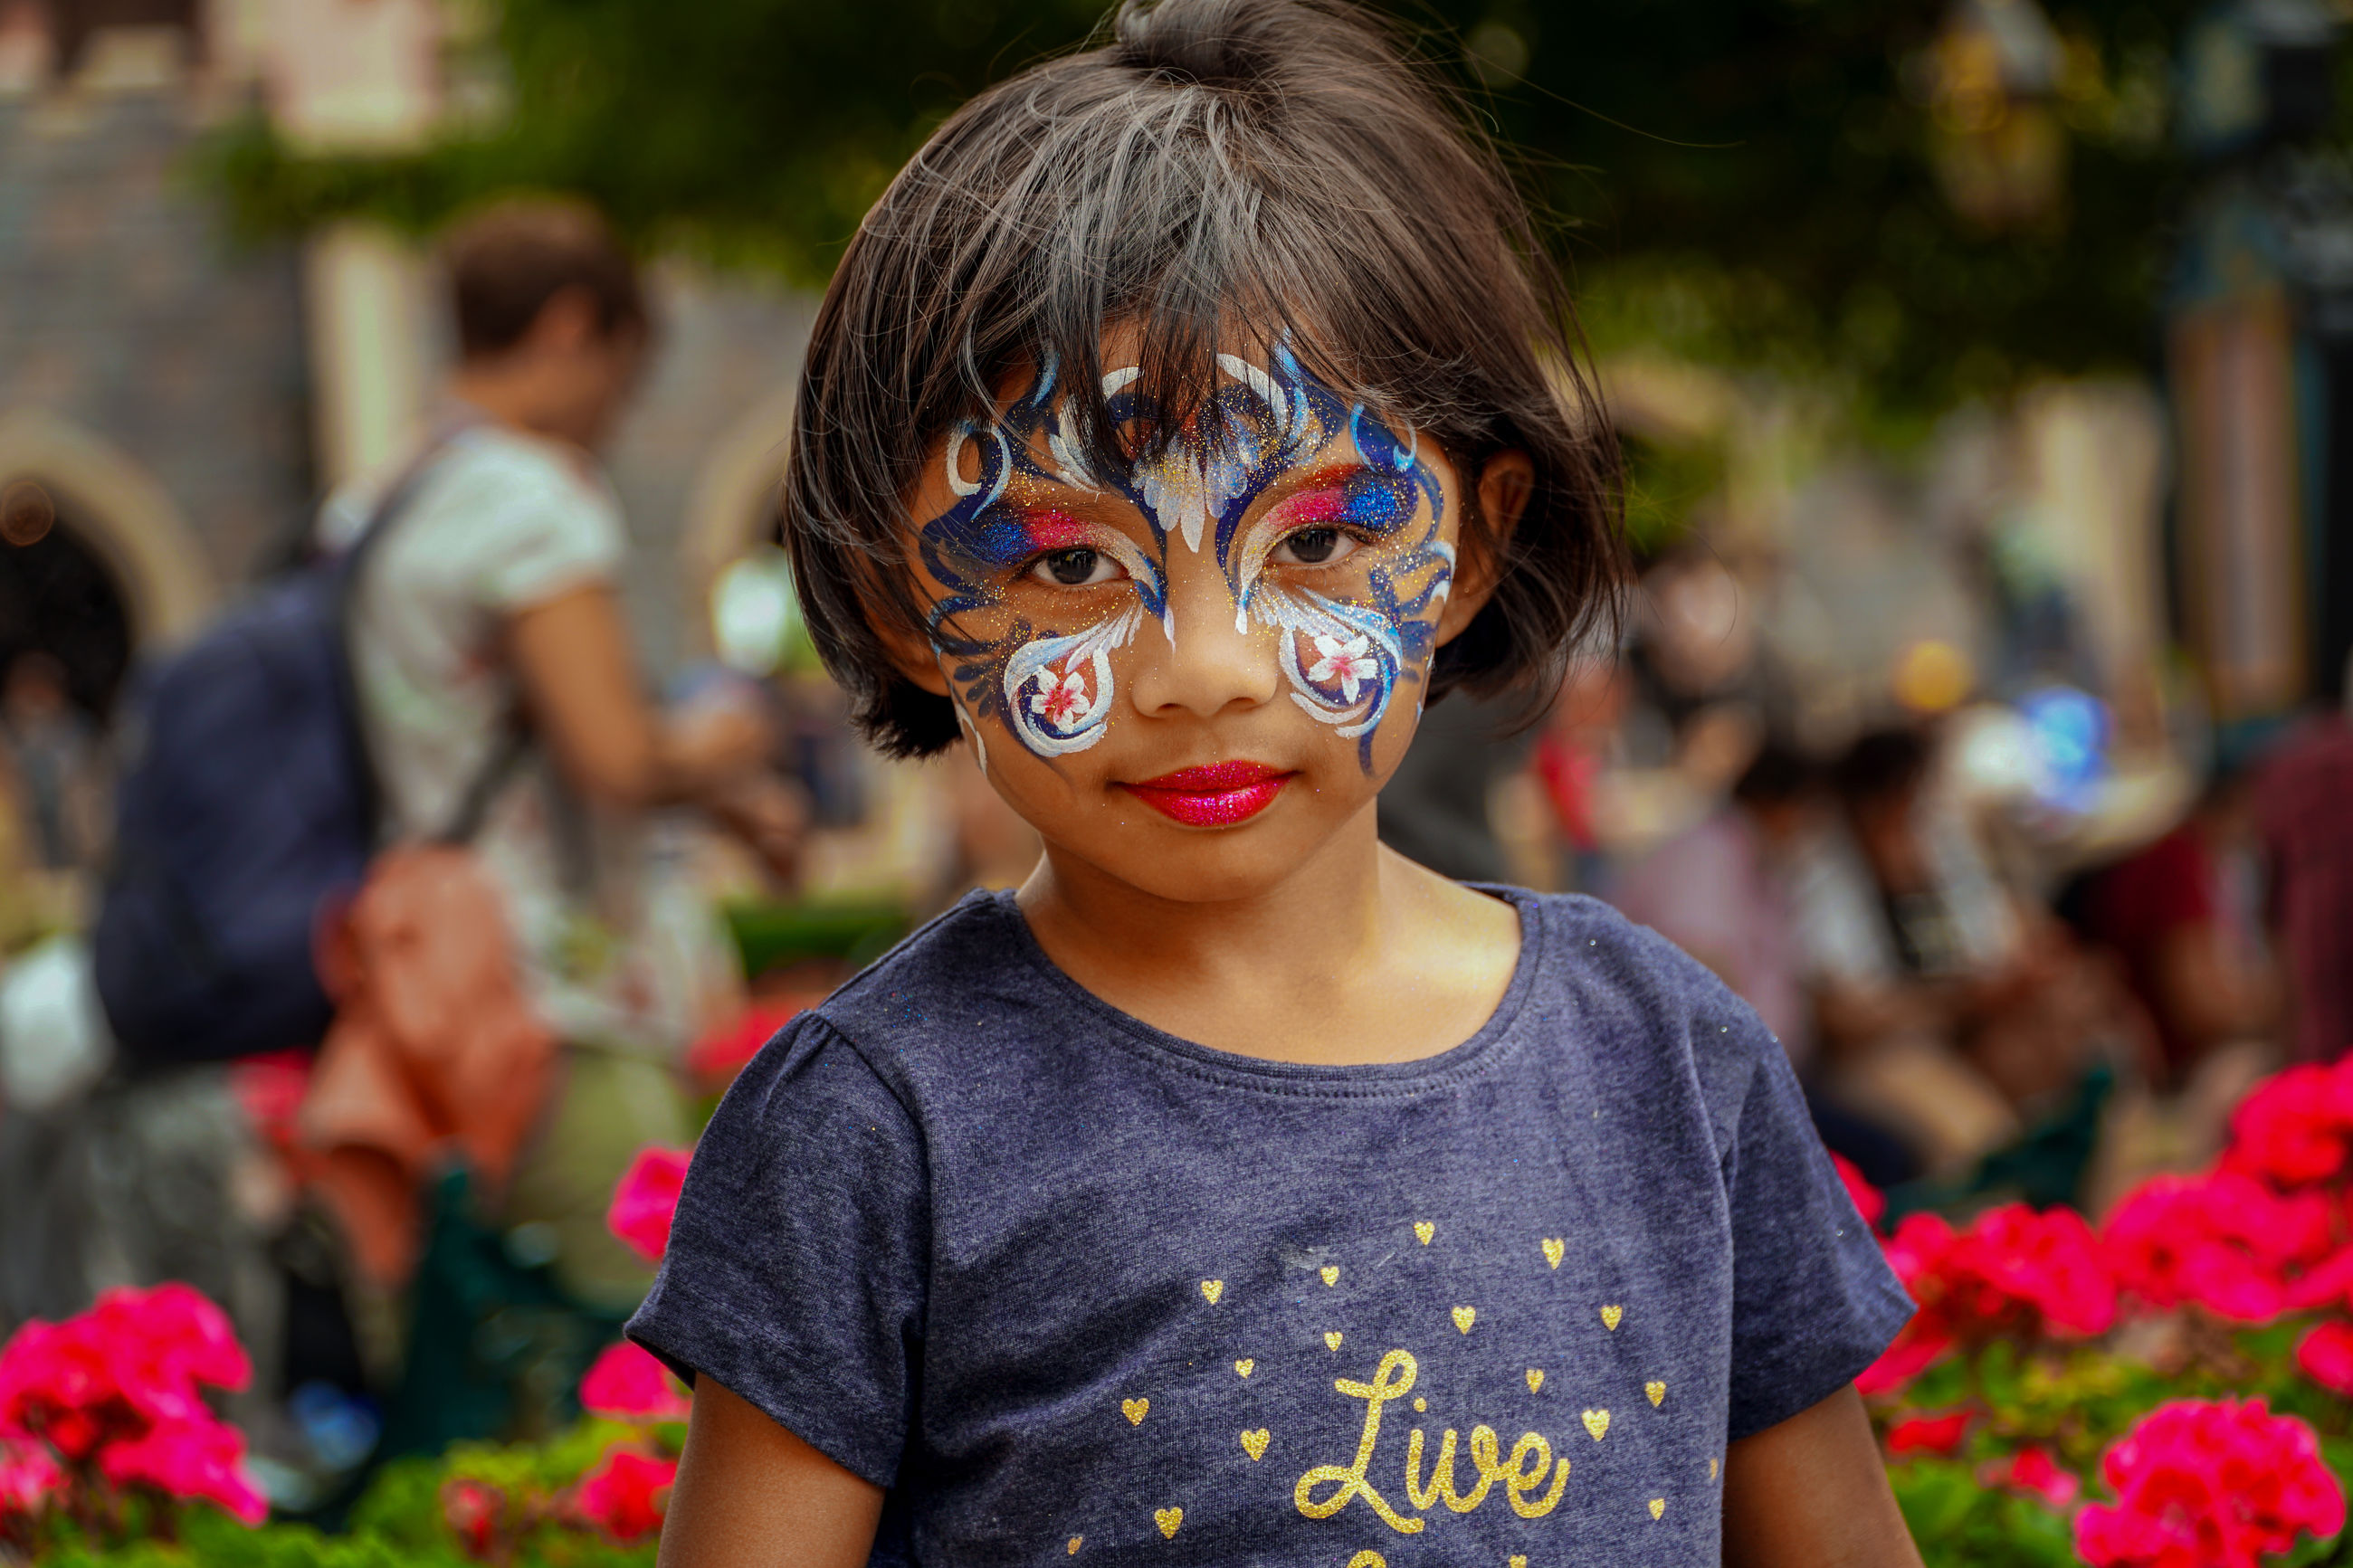 portrait, child, front view, childhood, headshot, real people, one person, looking at camera, focus on foreground, incidental people, boys, face paint, innocence, leisure activity, paint, lifestyles, flower, casual clothing, hairstyle